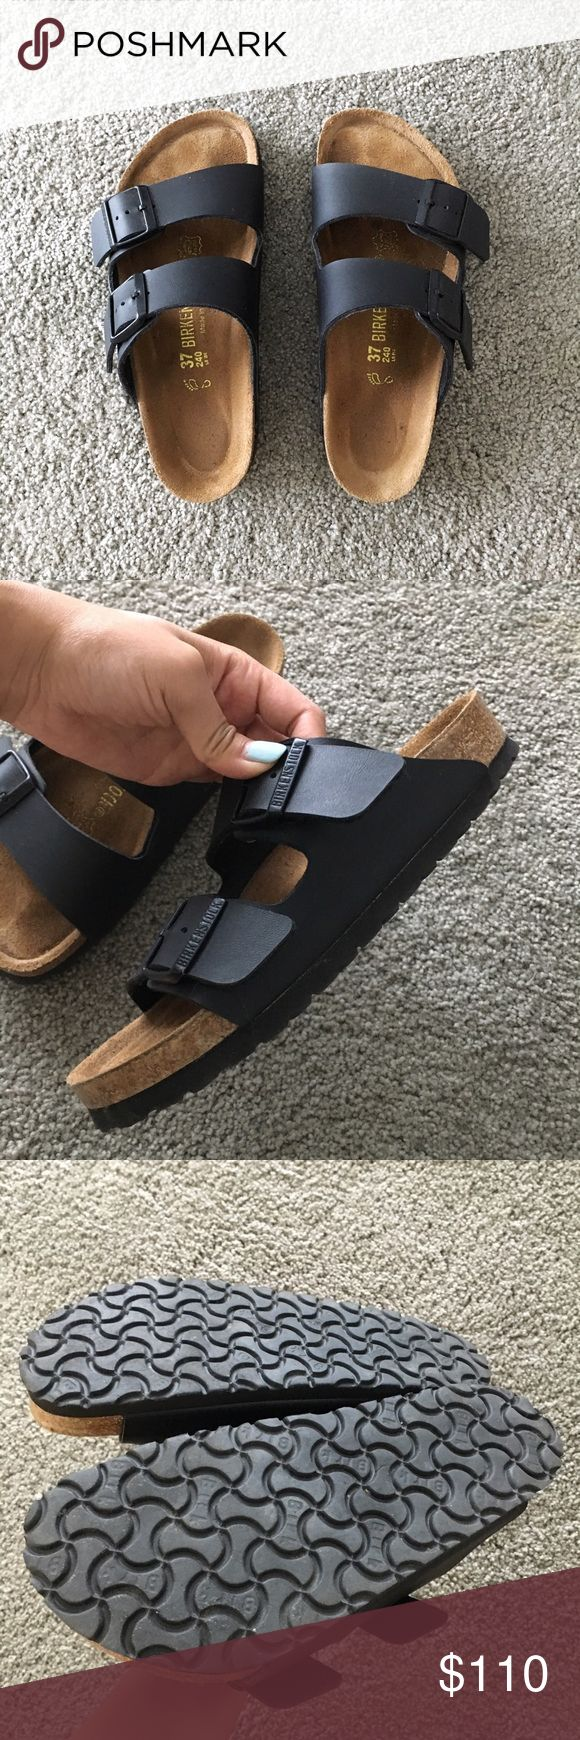 Black Arizona Birkenstock Sandals Excellent condition black Birkenstock Arizona double strap sandals. Black on black and only worn a couple times. Size 37 and L6 - I'm a 6.5 and they fit me well. Please look online for sizing on Birkenstocks. These are so comfy and you'll have them for years! No trades ❤ Birkenstock Shoes Sandals